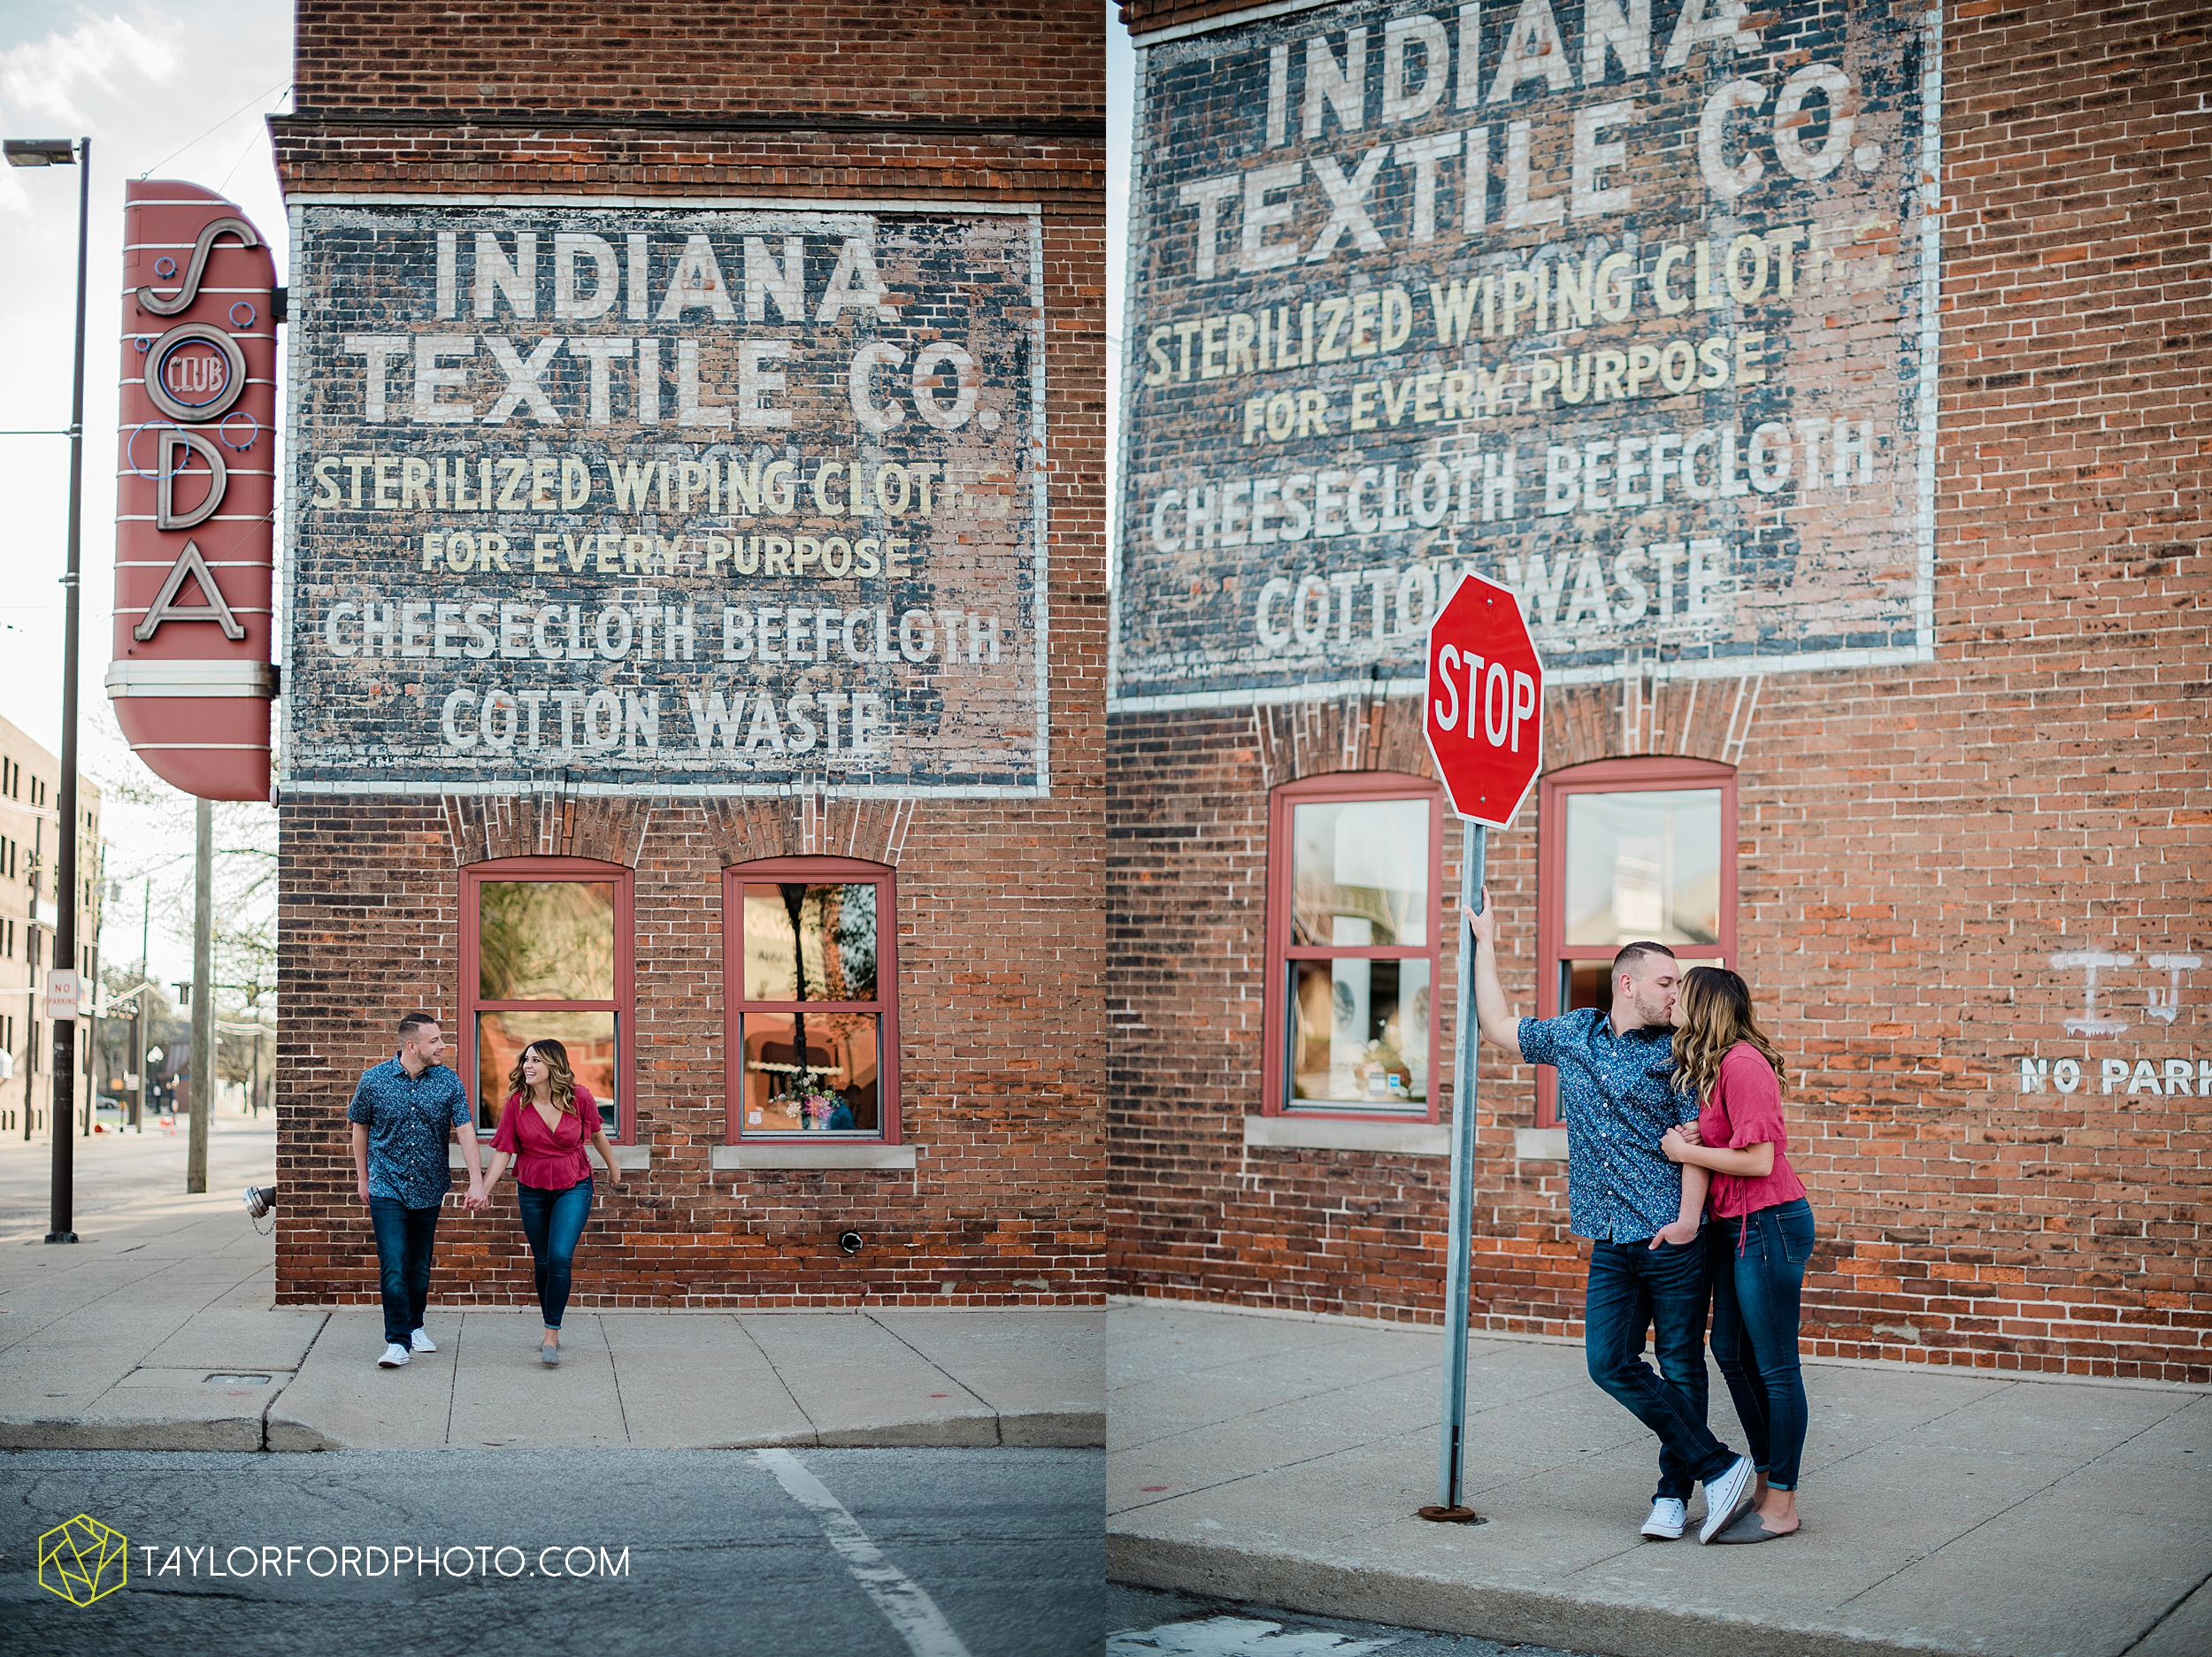 aly-taylor-downtown-fort-wayne-indiana-spring-engagement-photographer-photography-taylor-ford-hirschy-photographer_2593.jpg